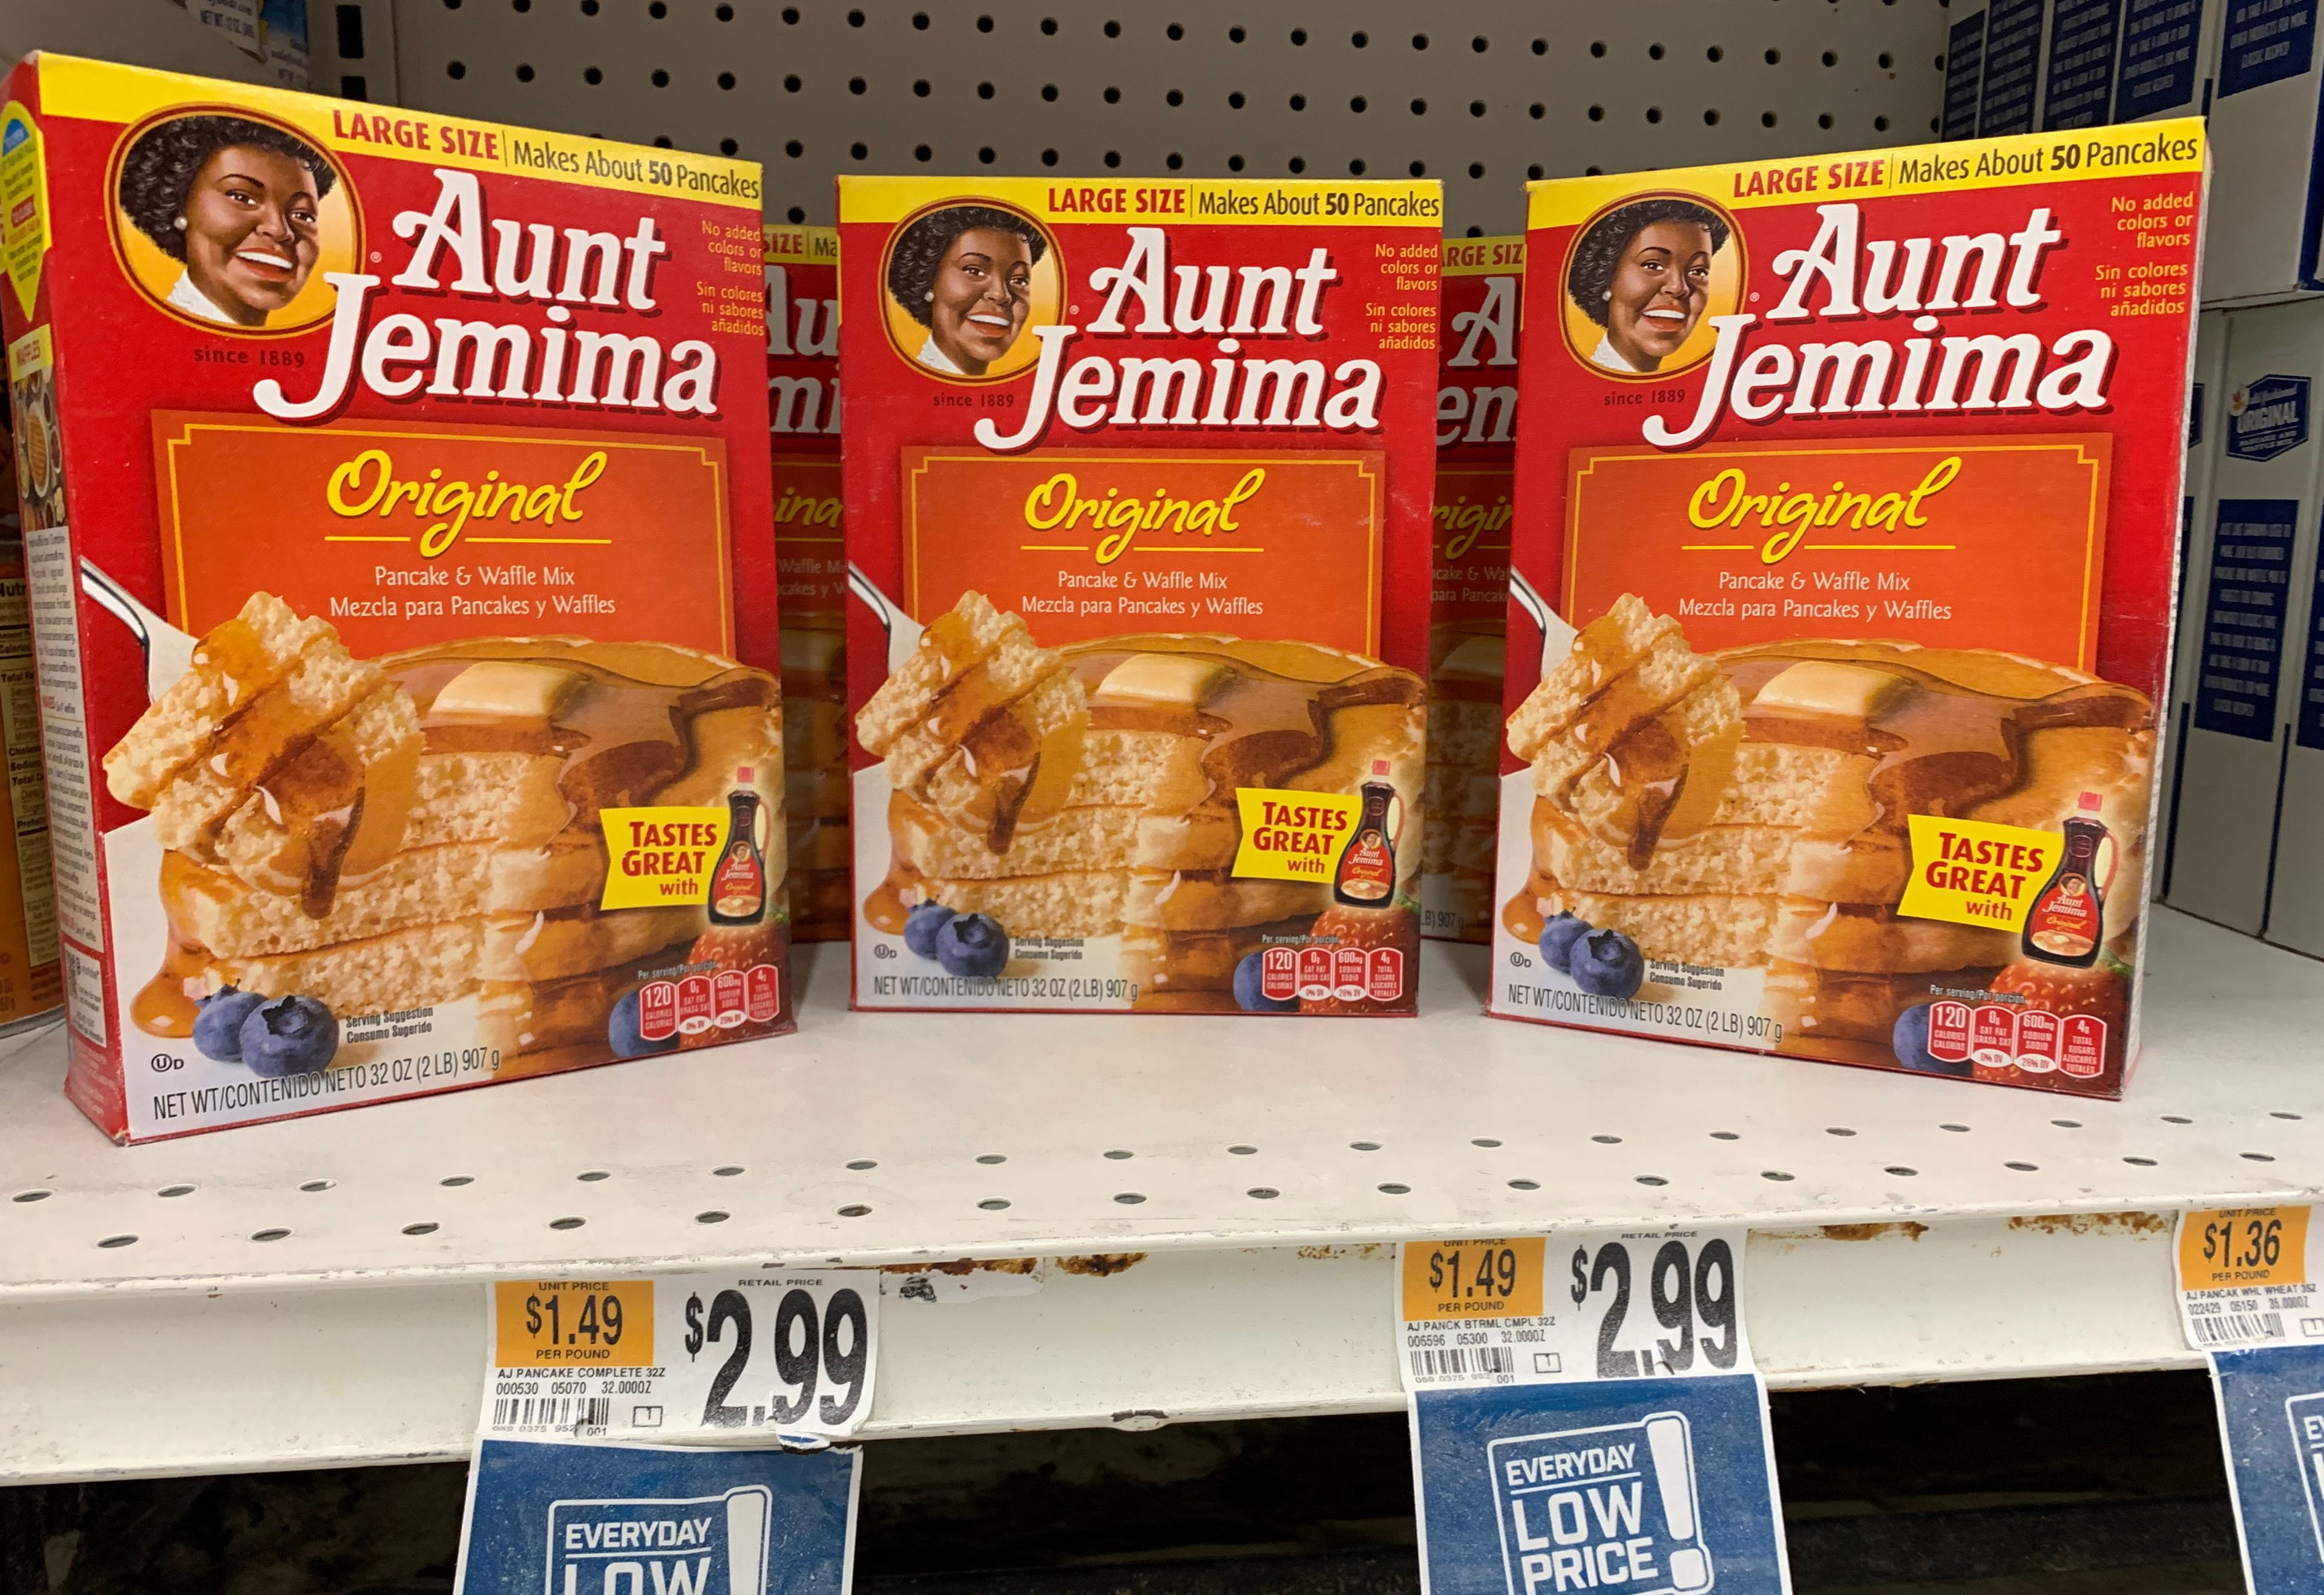 """Boxes of Aunt Jemima pancake mix are seen on a store shelf on June 17, 2020 in Washington,DC. - The Aunt Jemima brand of syrup and pancake mix will get a new name and image, Quaker Oats announced on June 17, 2020, saying that the company recognizes that """"Aunt Jemima's origins are based on a racial stereotype."""" (Photo by EVA HAMBACH/AFP via Getty Images)"""